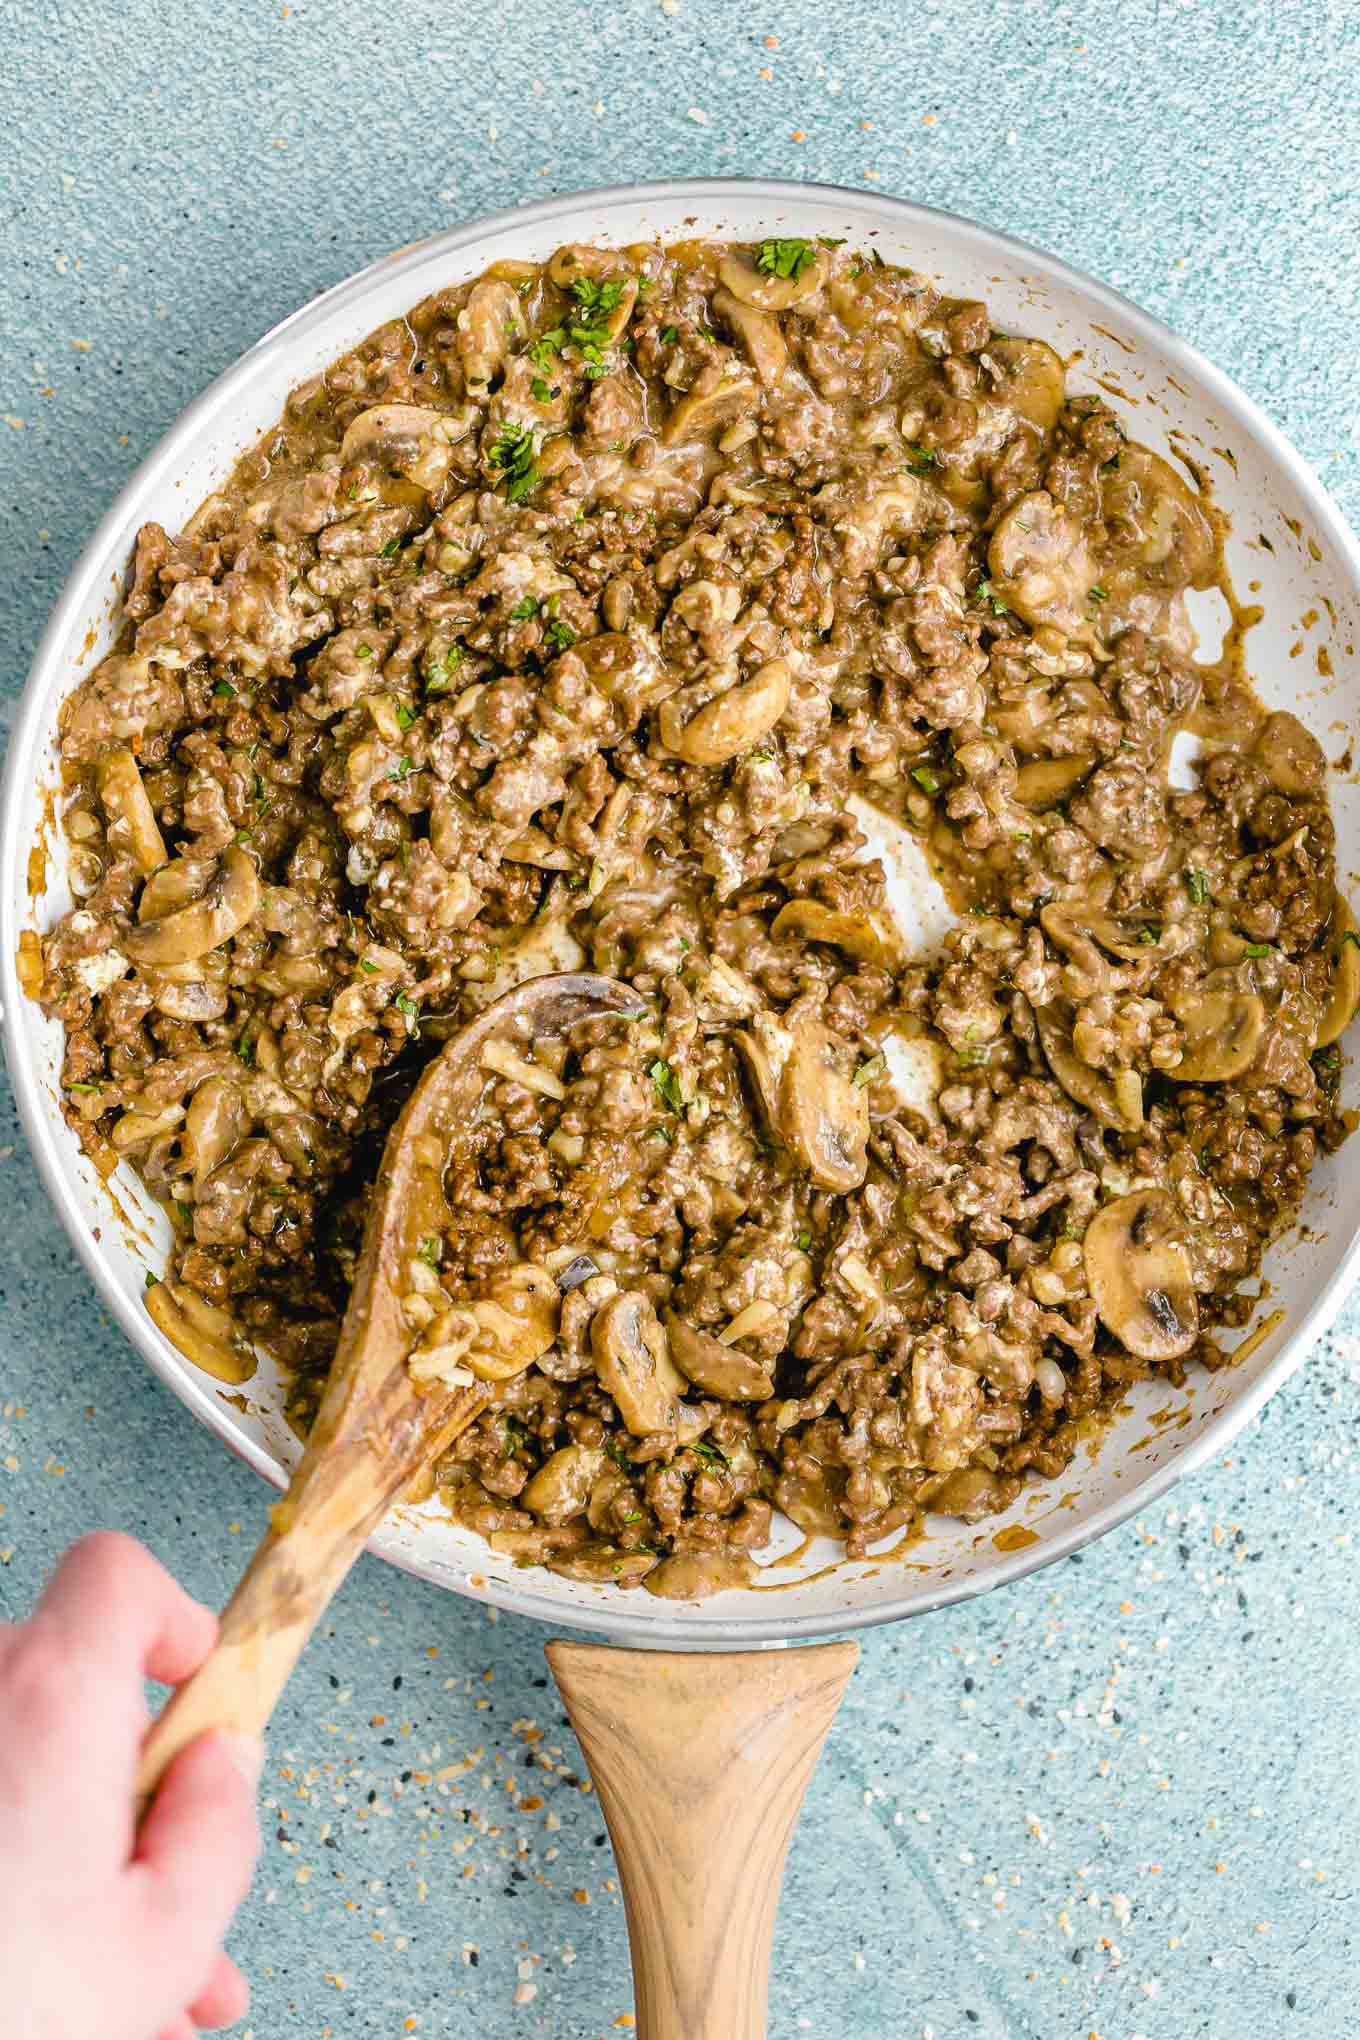 Creamy Cheeseburger Skillet with Mushrooms and Swiss! A deliciously creamy, cheesy, fully-loaded cheeseburger skillet that the whole family will love. Make it in just 30 minutes with ground beef, mushrooms, onions, cream cheese, and Swiss cheese.